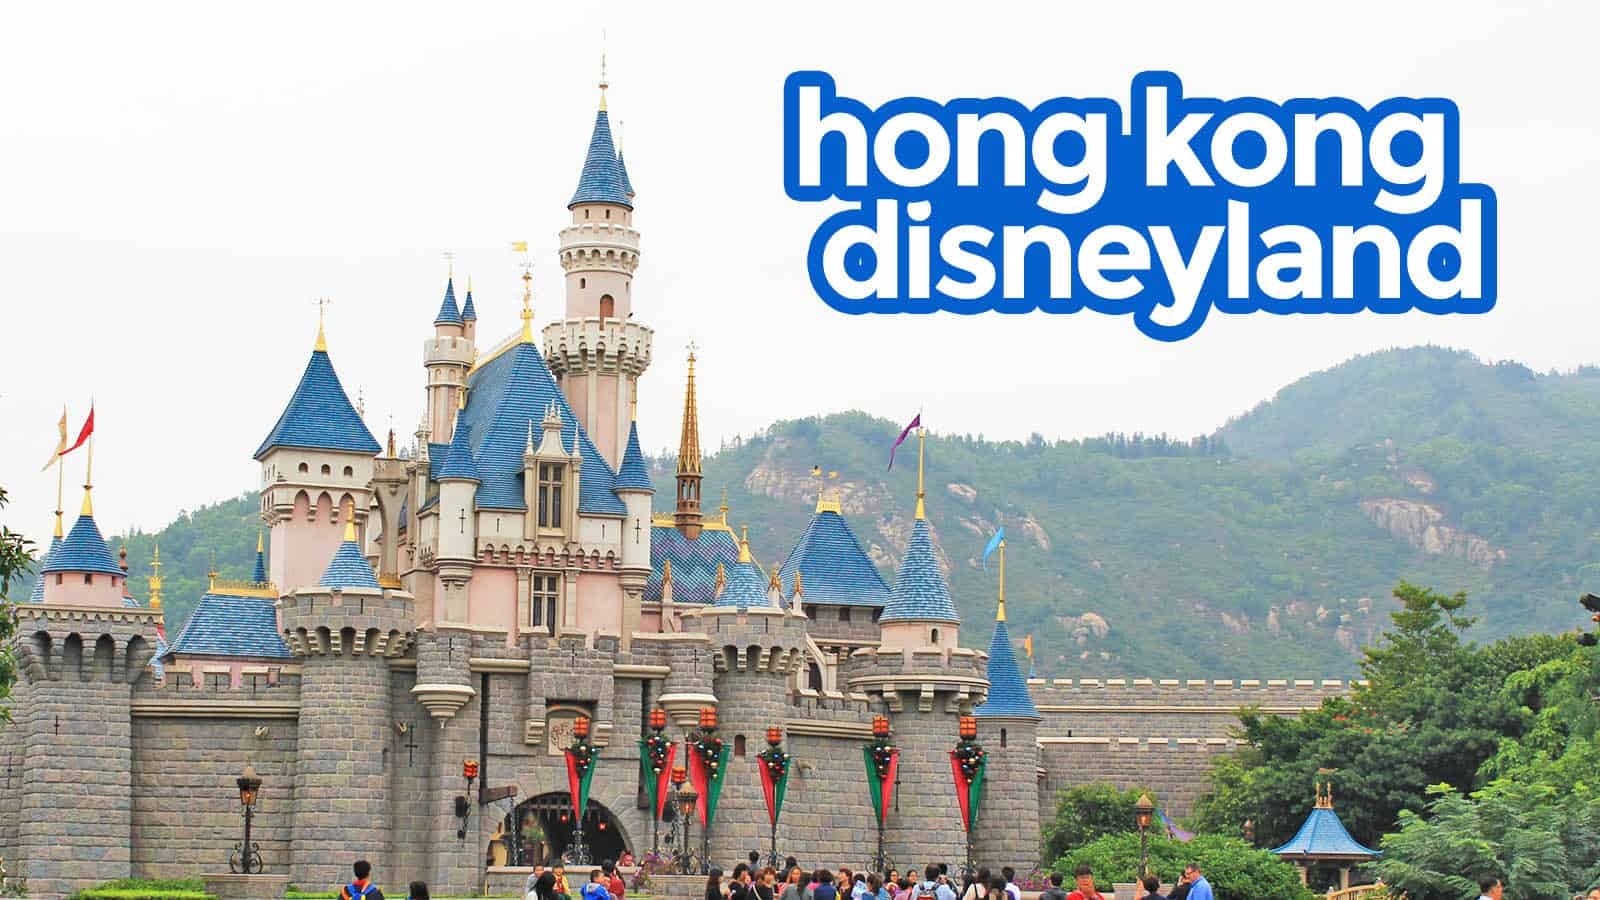 HONG KONG DISNEYLAND: Guide for First-Timers